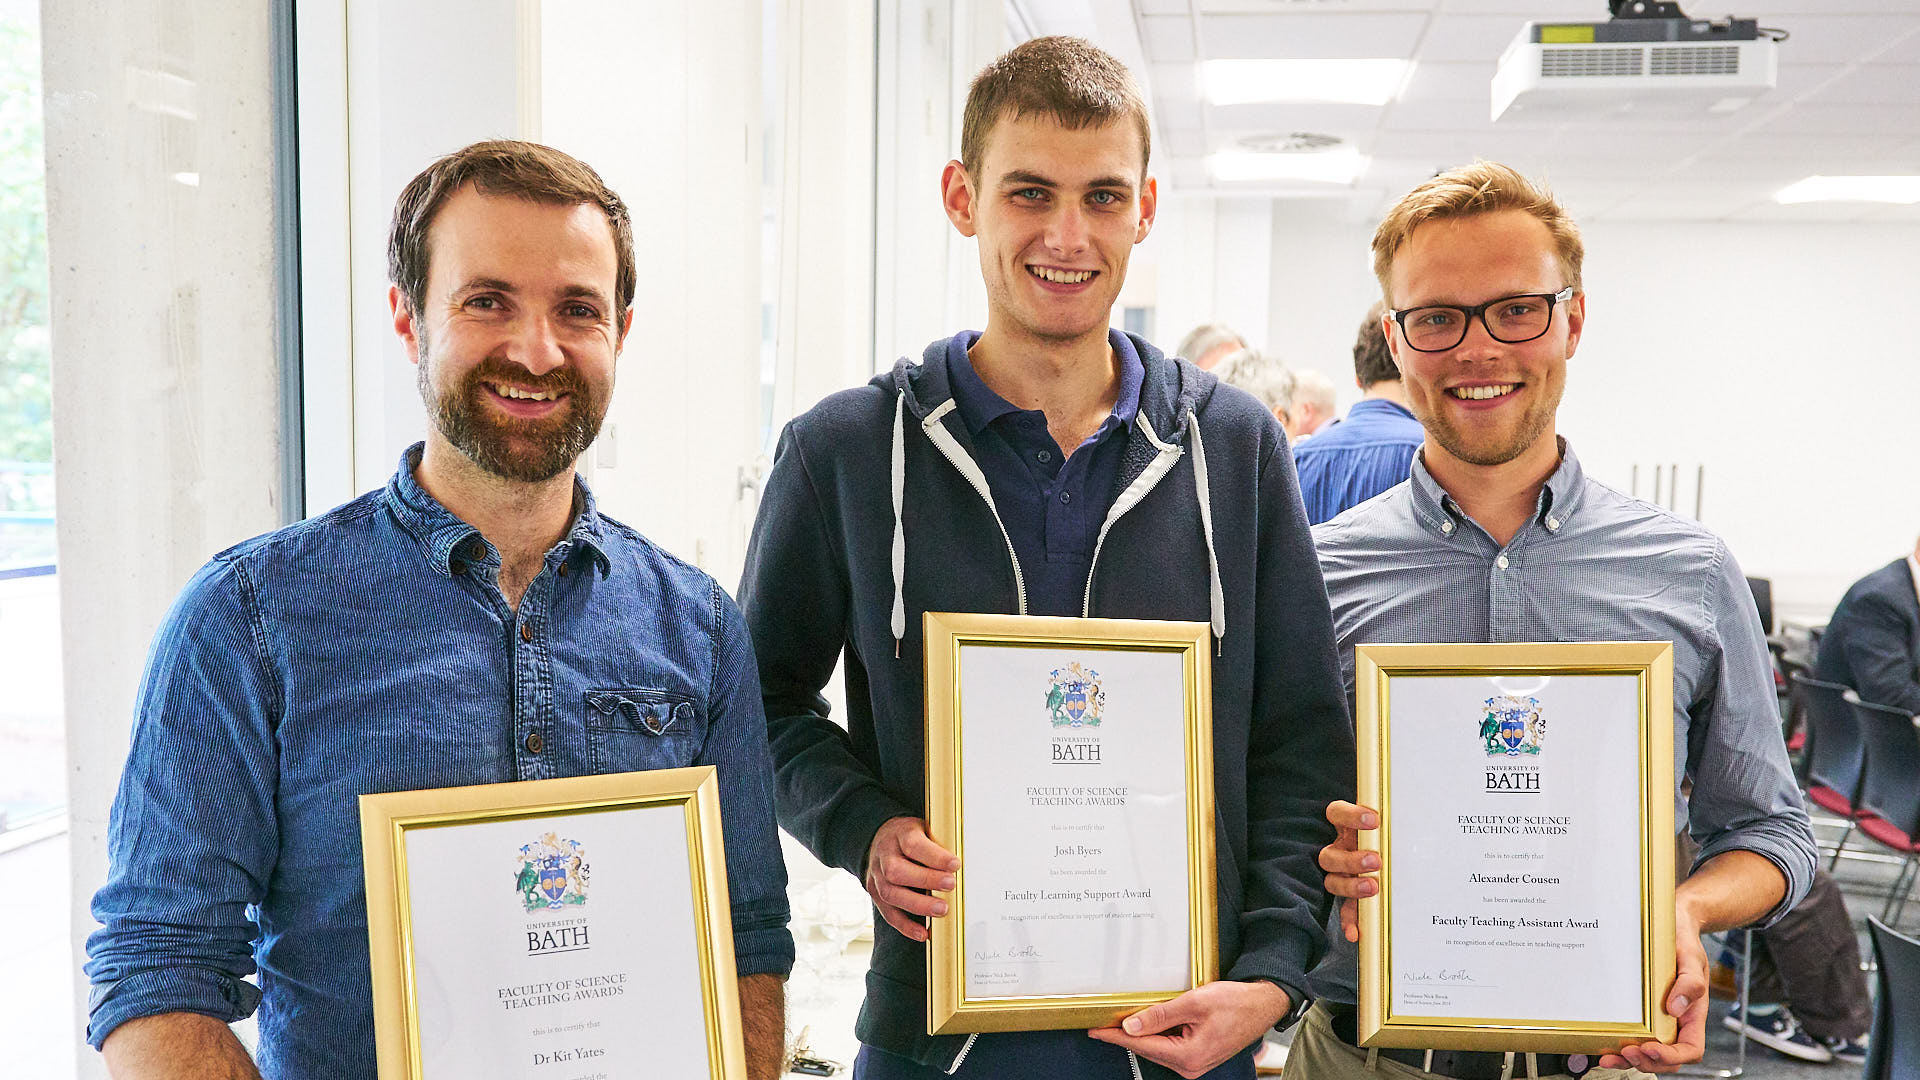 The three winners of the Faculty of Science teaching awards